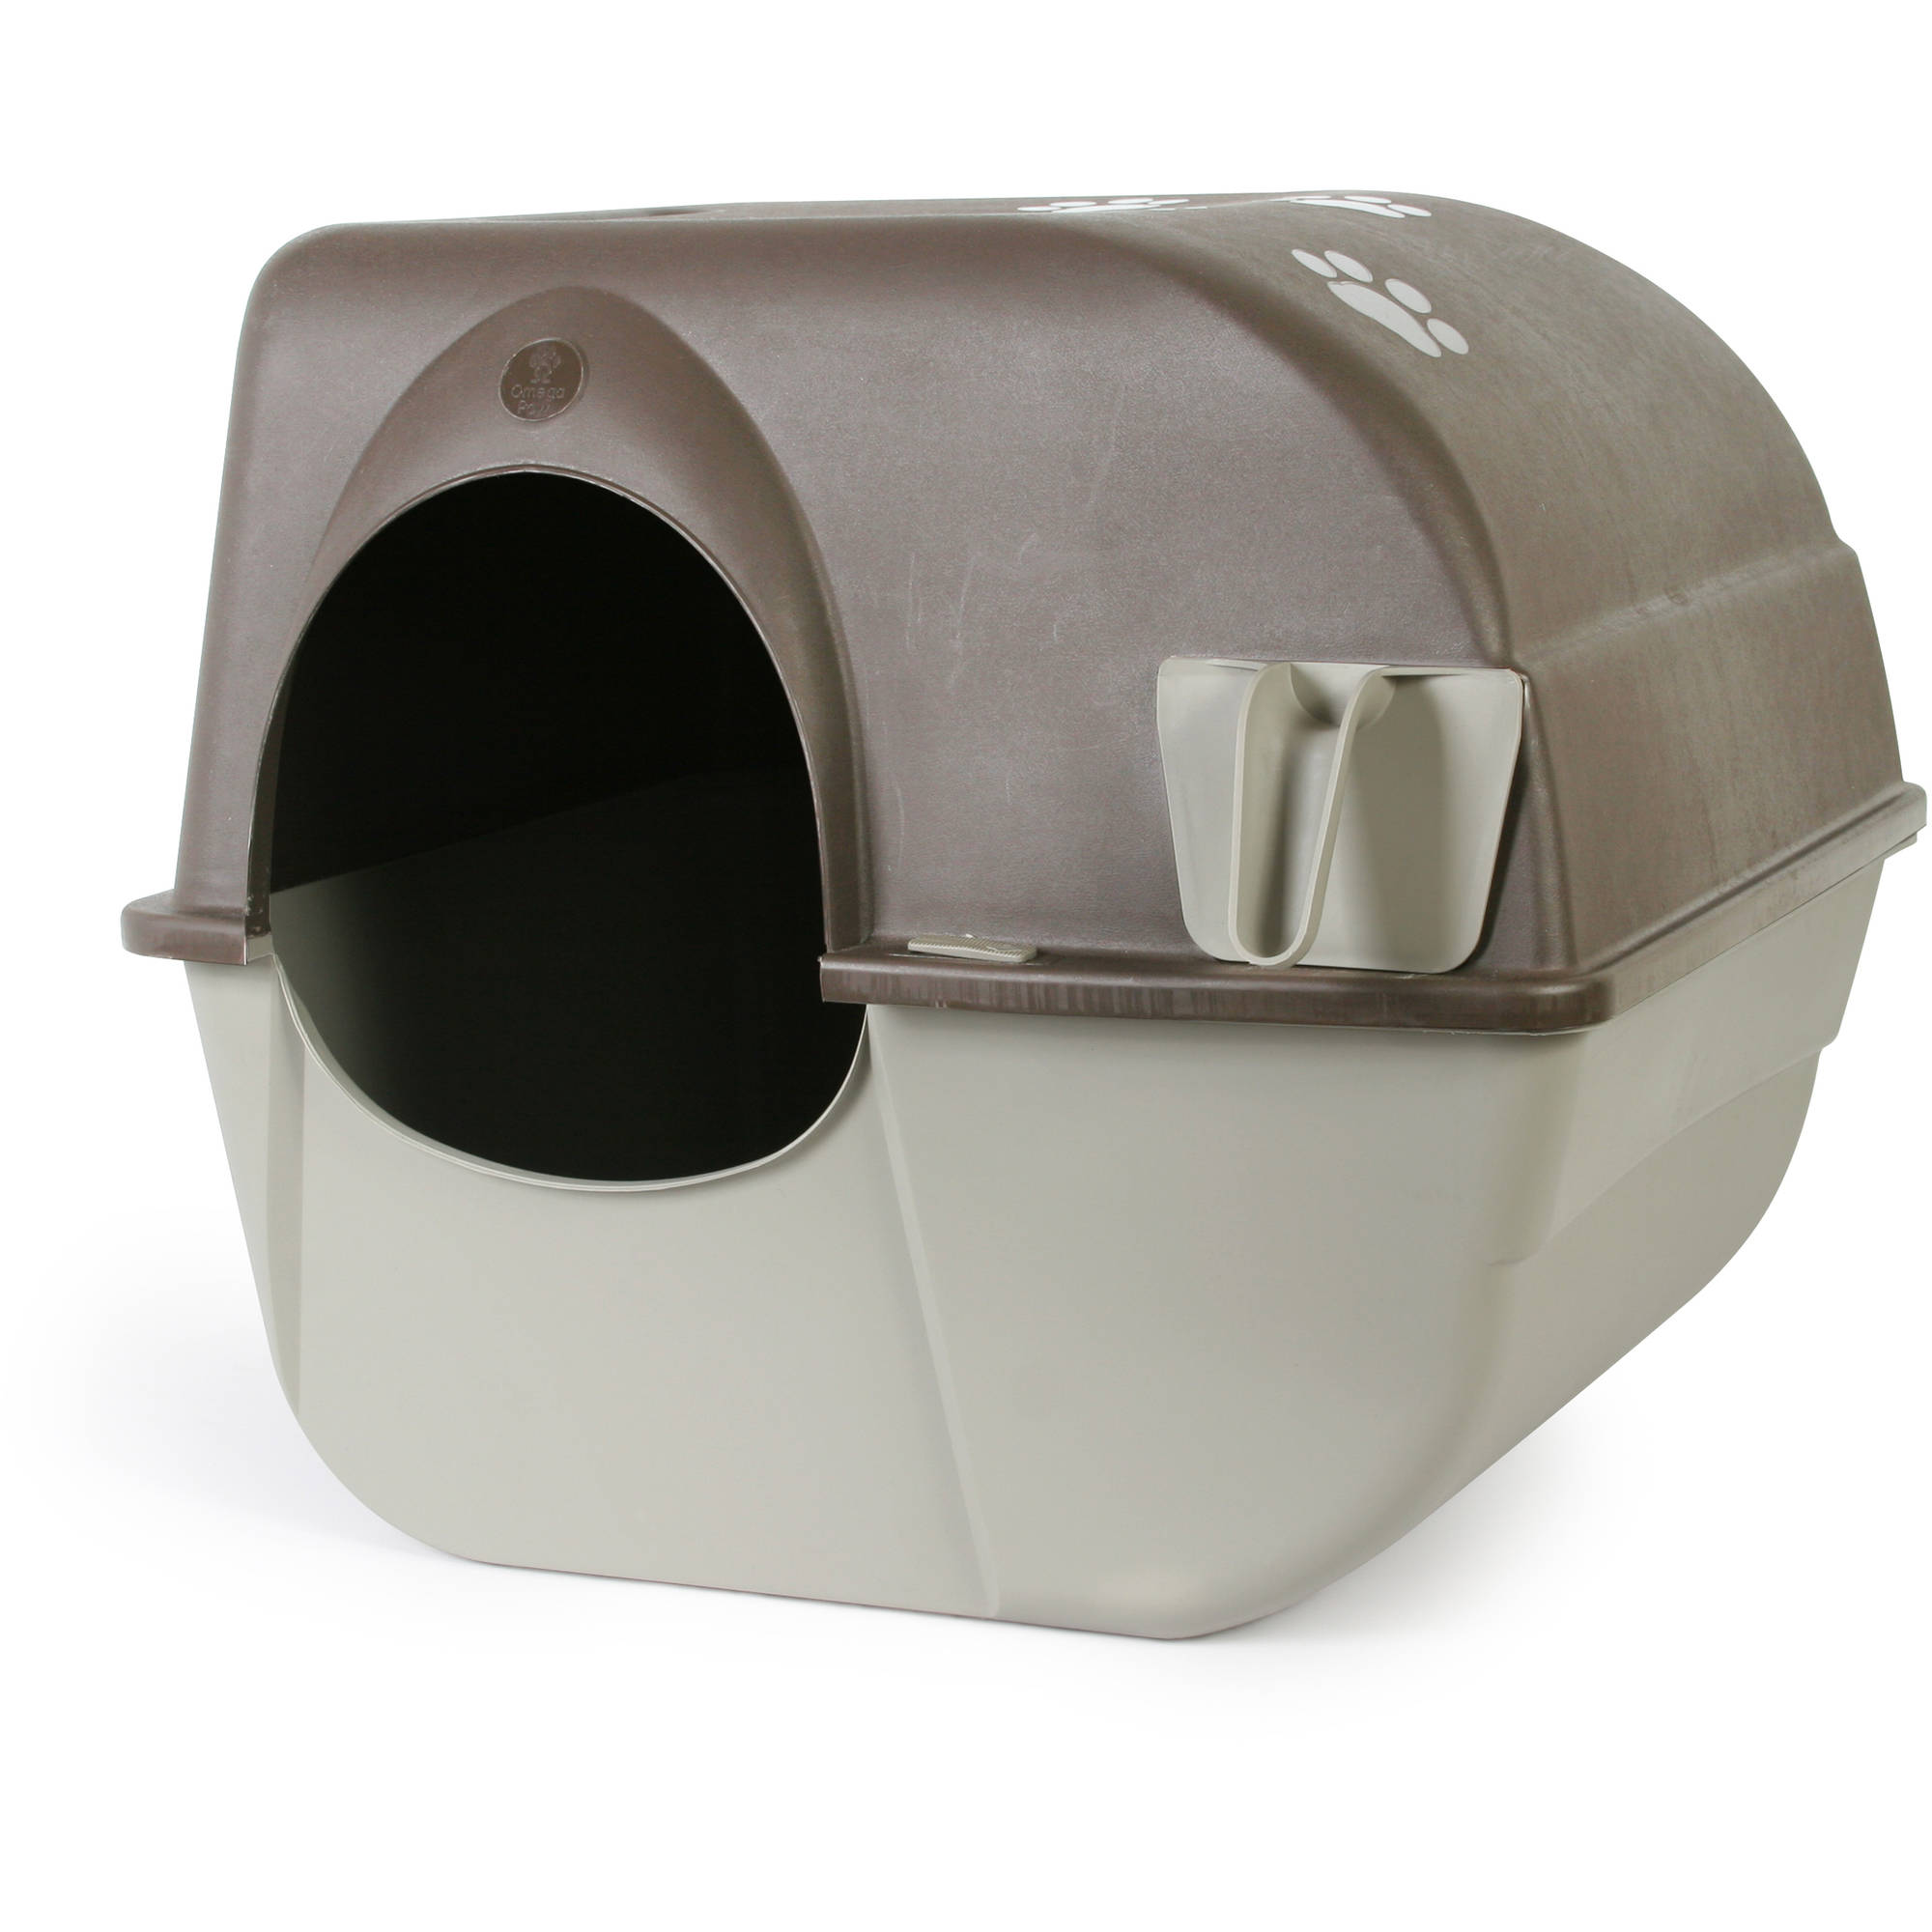 Omega Paw Roll u0027n Clean Litter Box Large  sc 1 st  Walmart & Omega Paw Roll u0027n Clean Litter Box Large - Walmart.com